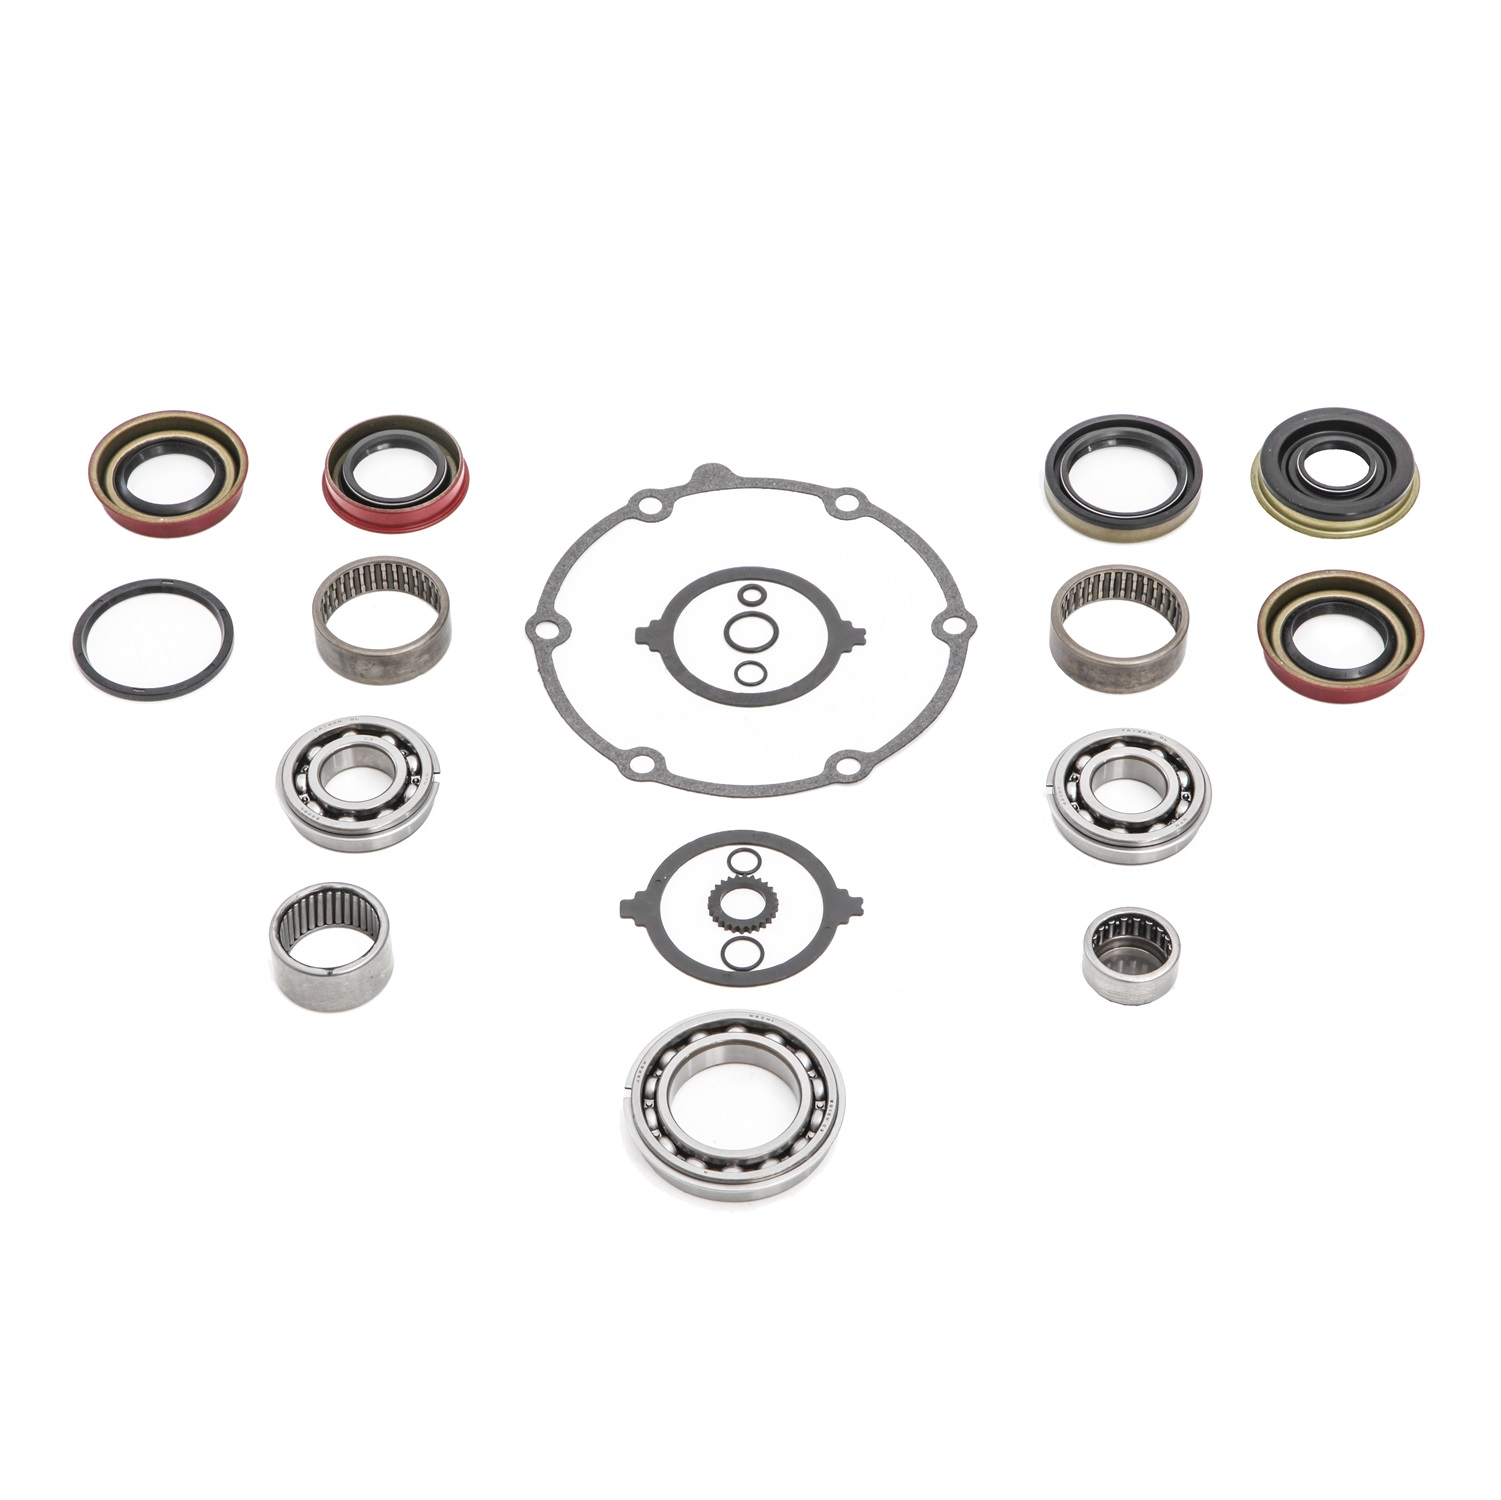 G2 Axle and Gear 37-231 Transfer Case Kit